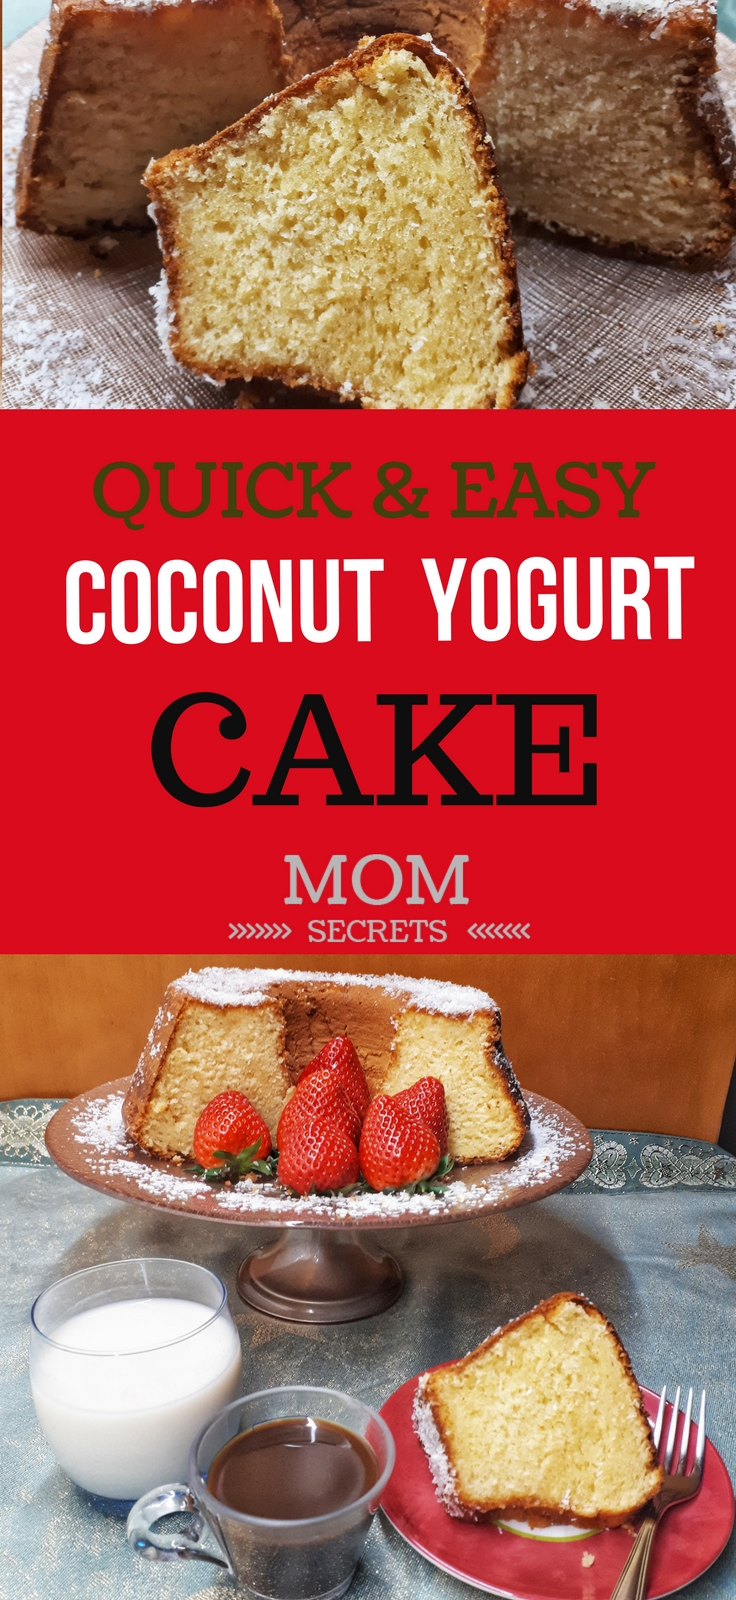 Today I'm bringing you an easy, simple and quick recipe for greek yogurt cake with grated coconut. This cake is ready in less than one hour. This is a perfect cake for breakfast or for an afternoon snack. It´s also perfect for kids school lunch.